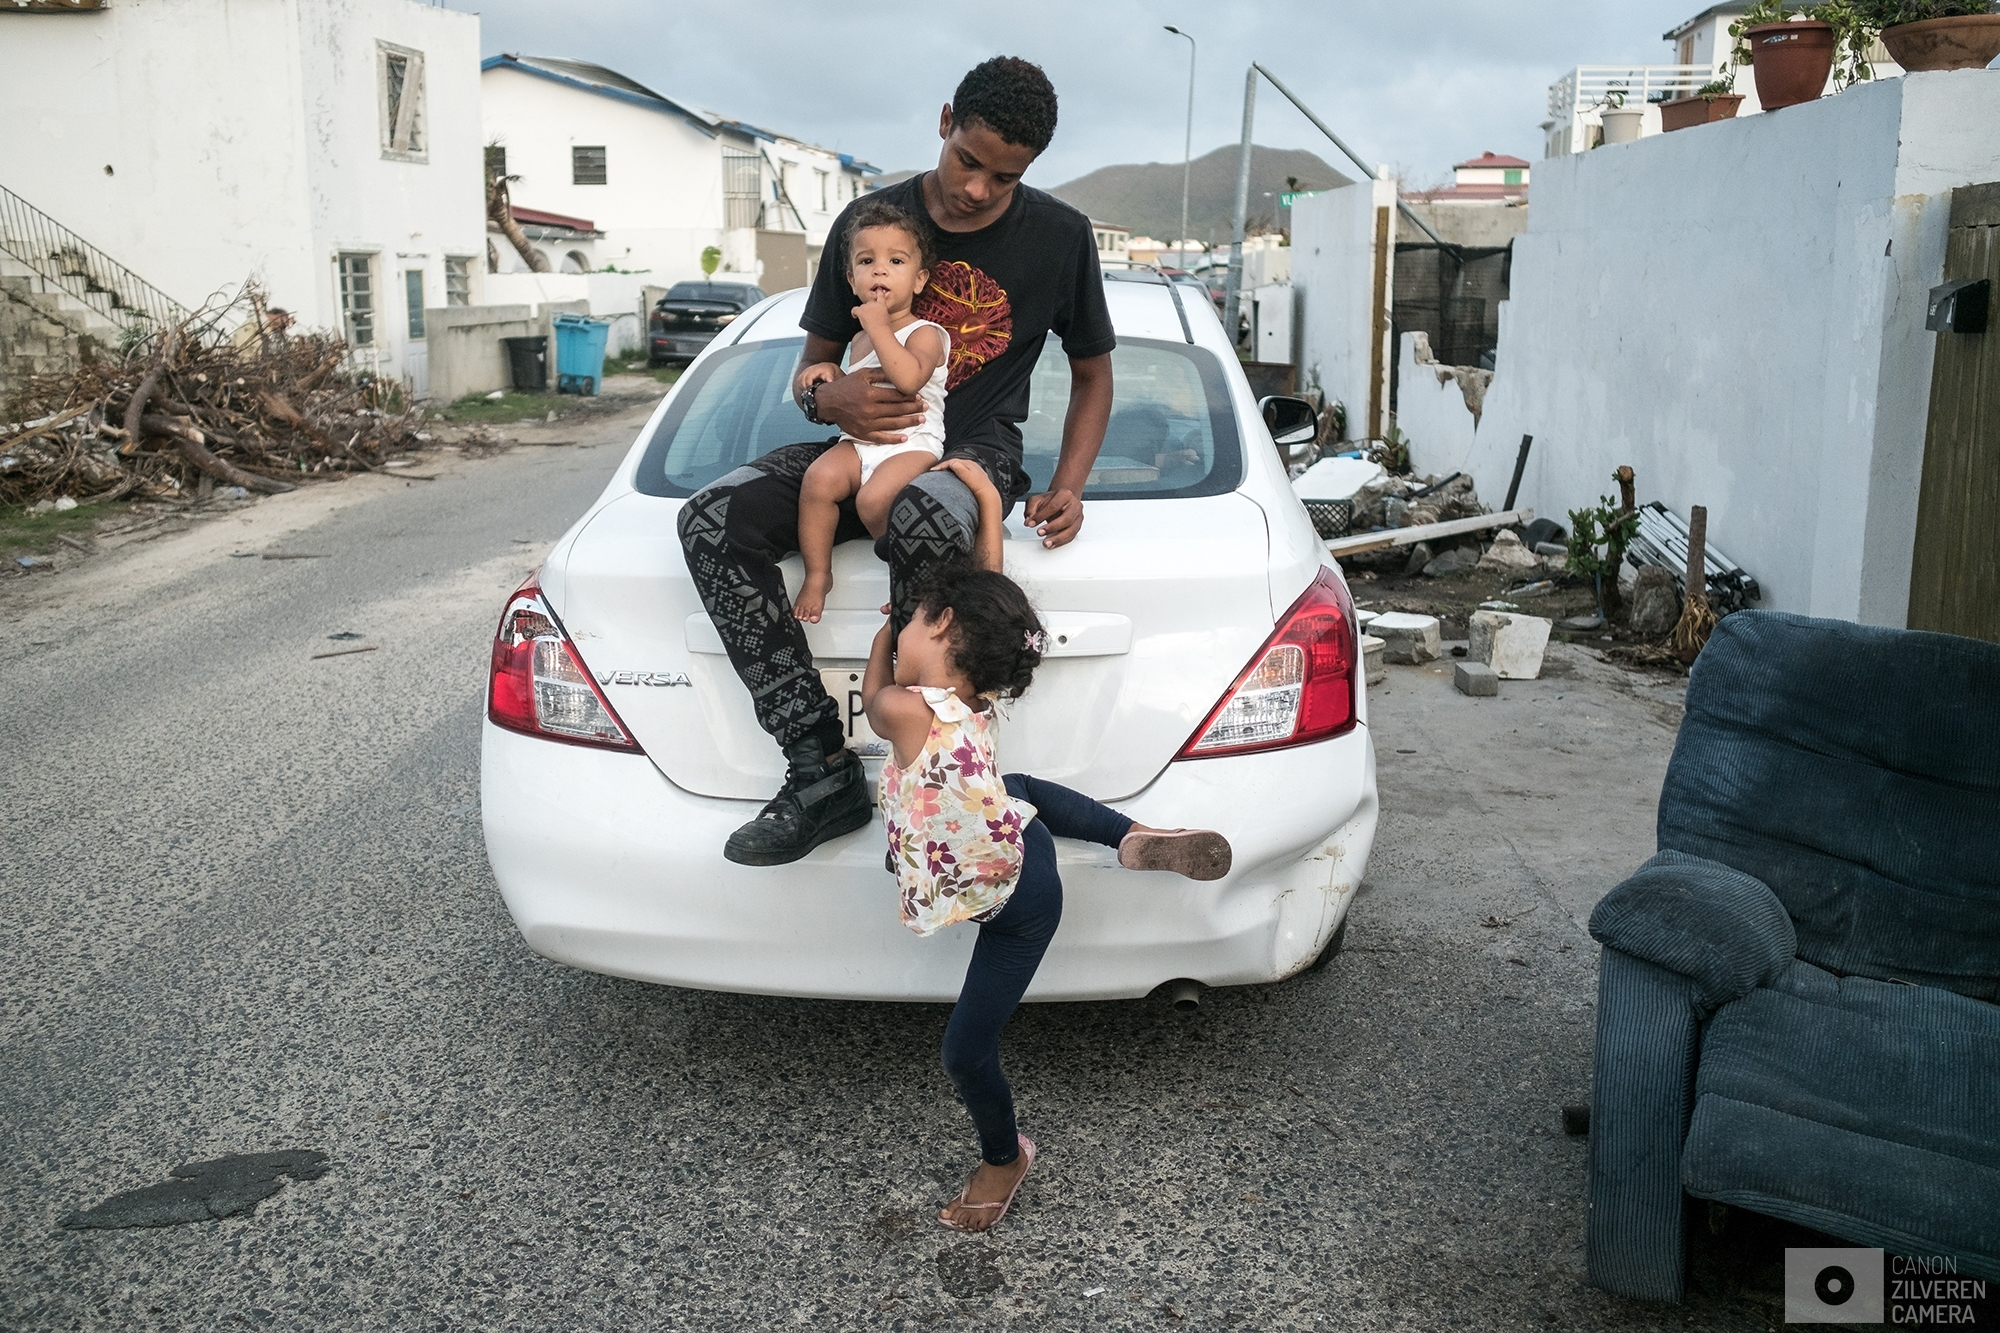 SINT MAARTEN | A young boy is playing with his siblings in front of his damaged house. | #10